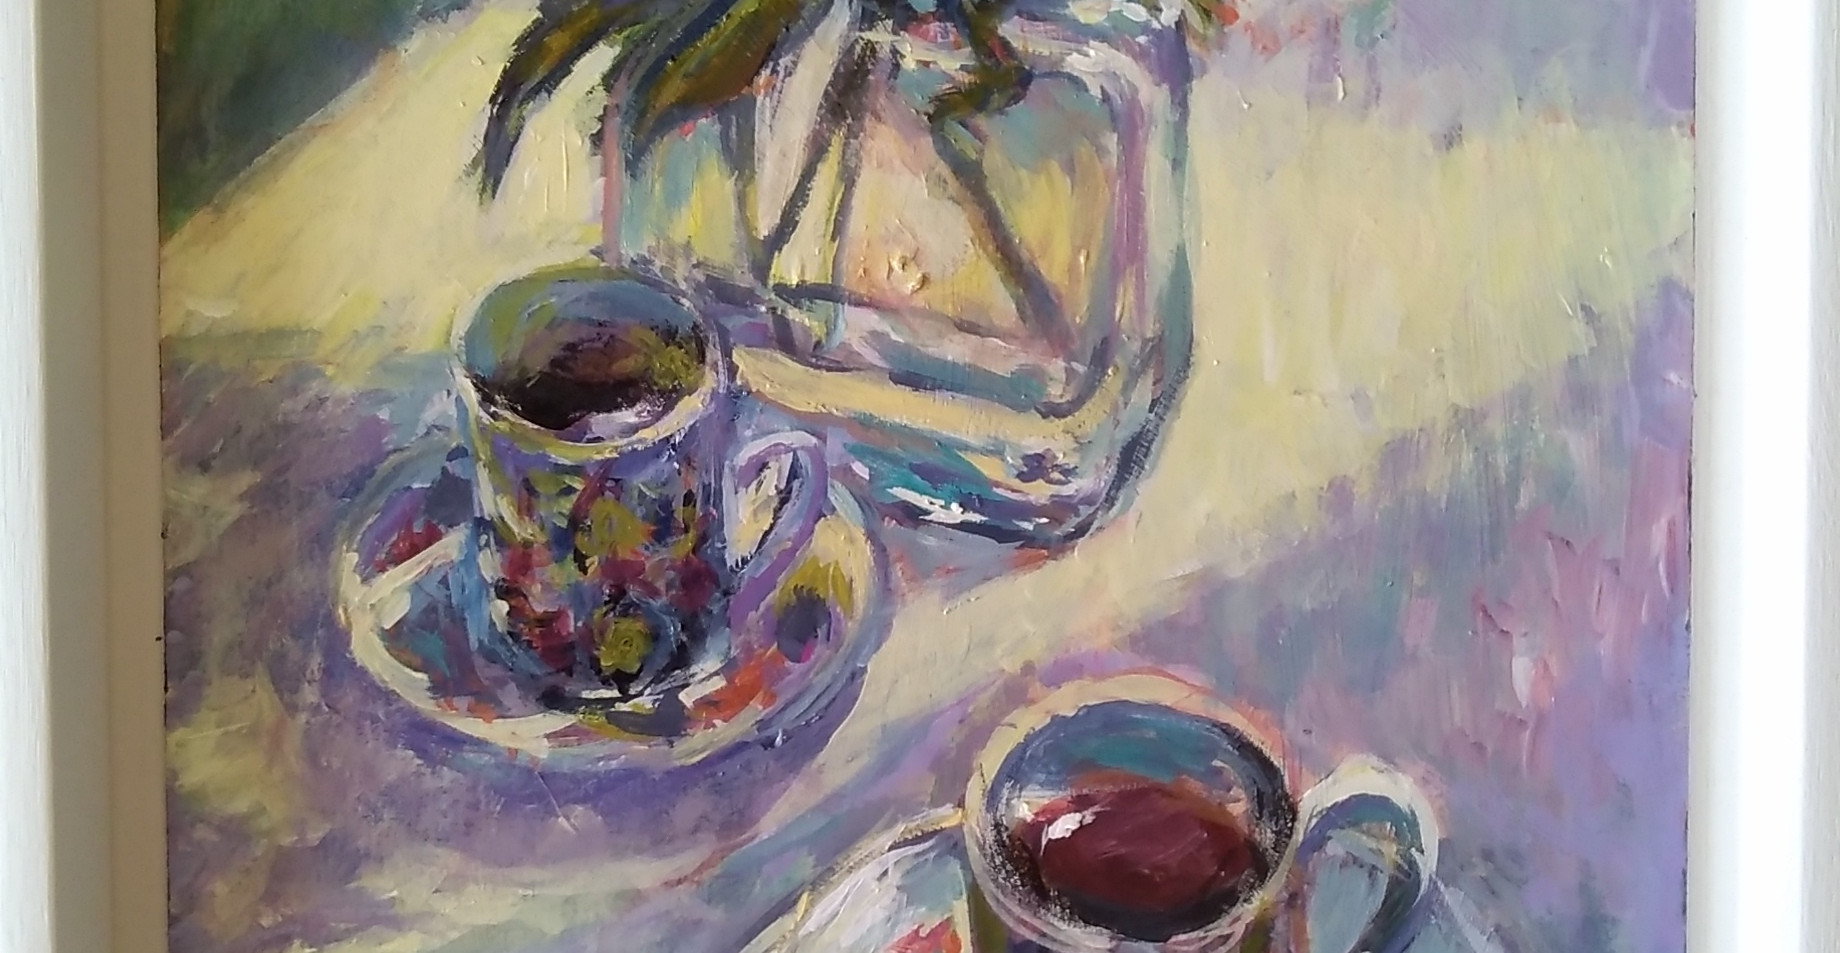 The Best Cups.Framed Acrylic on Board. 46 x 36